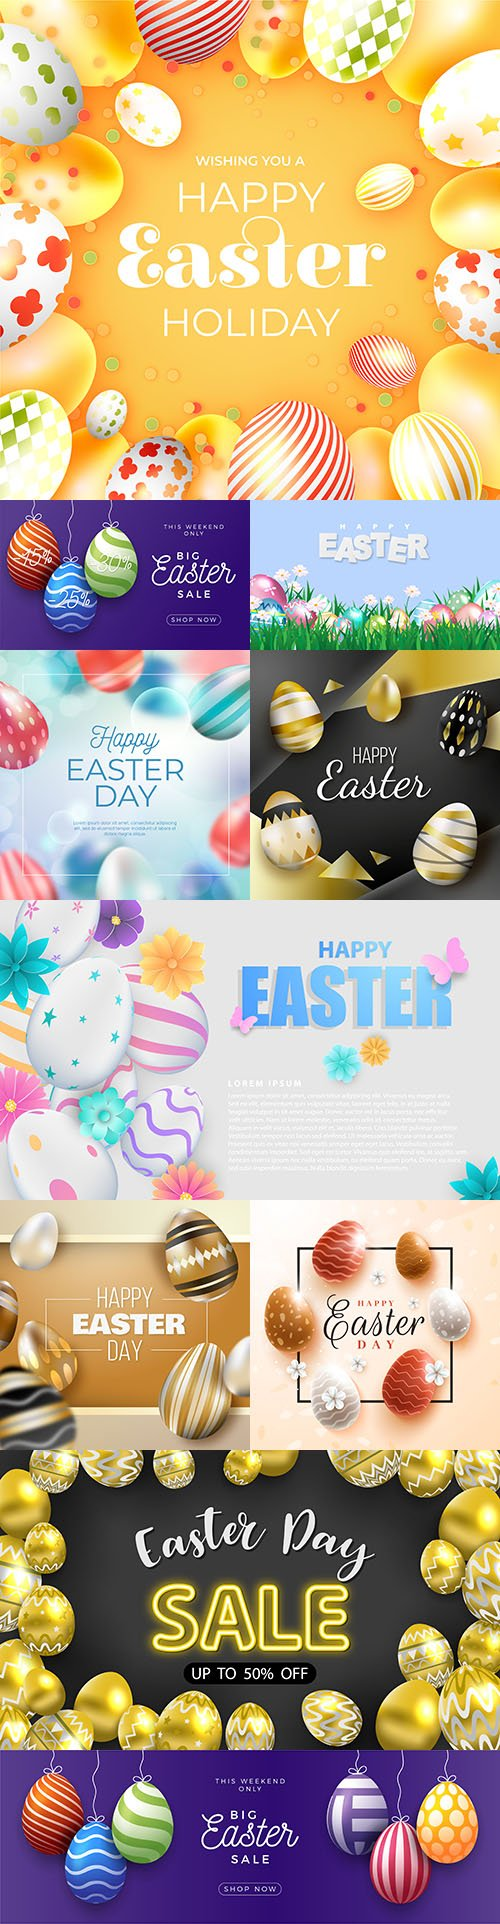 Happy Easter sale background multicolored eggs